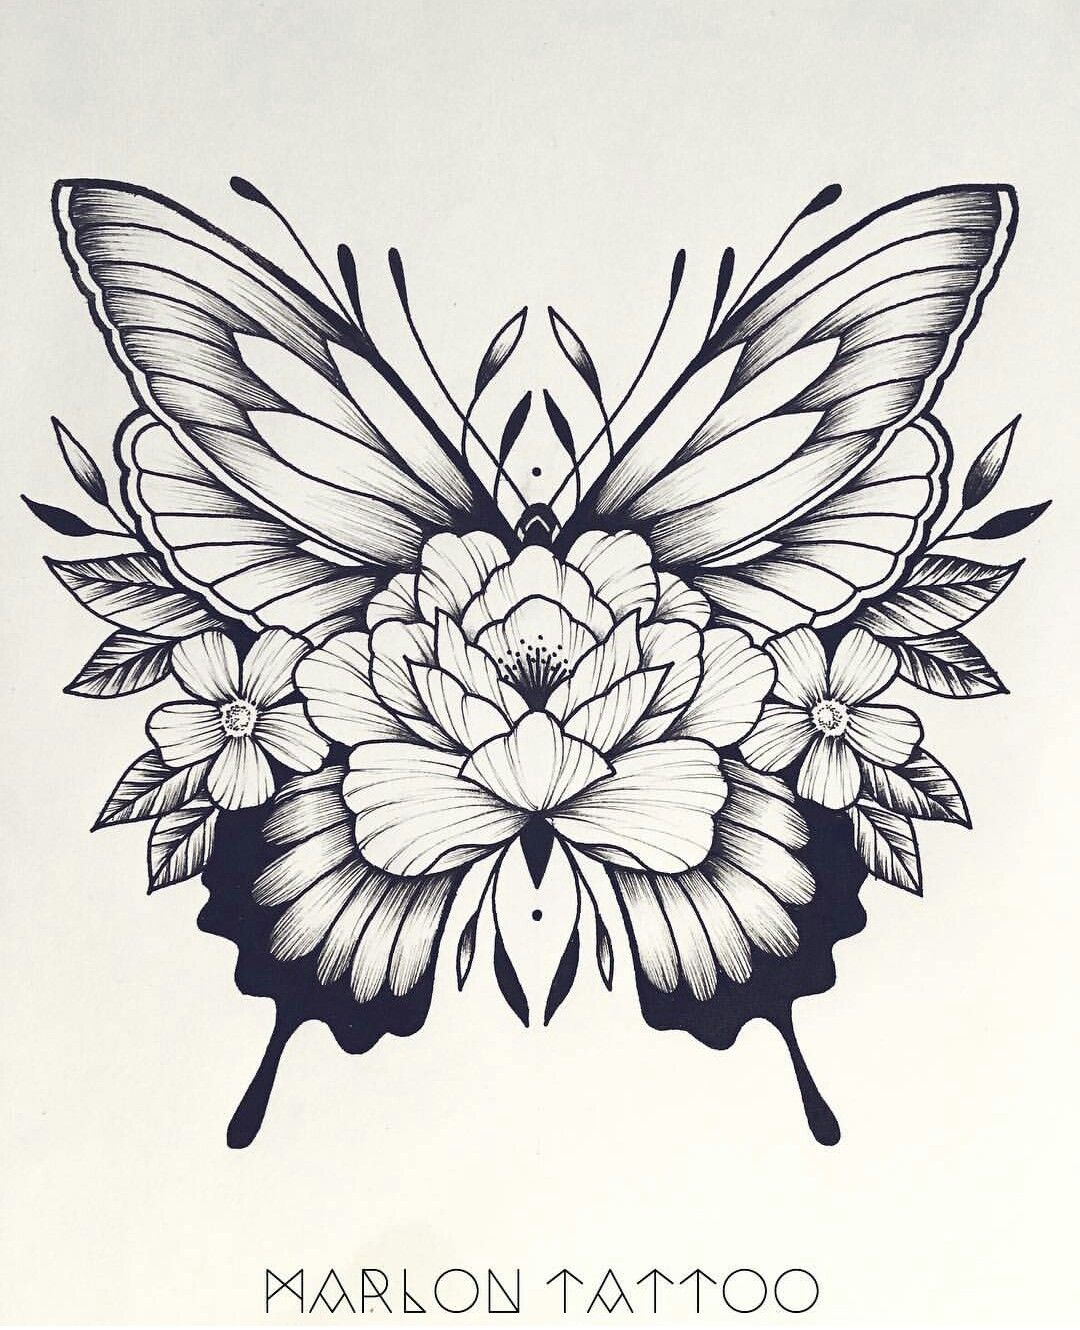 Big tattoo cover up ideas pin by rosi costa on tattoos  pinterest  butterfly tattoo and tatting